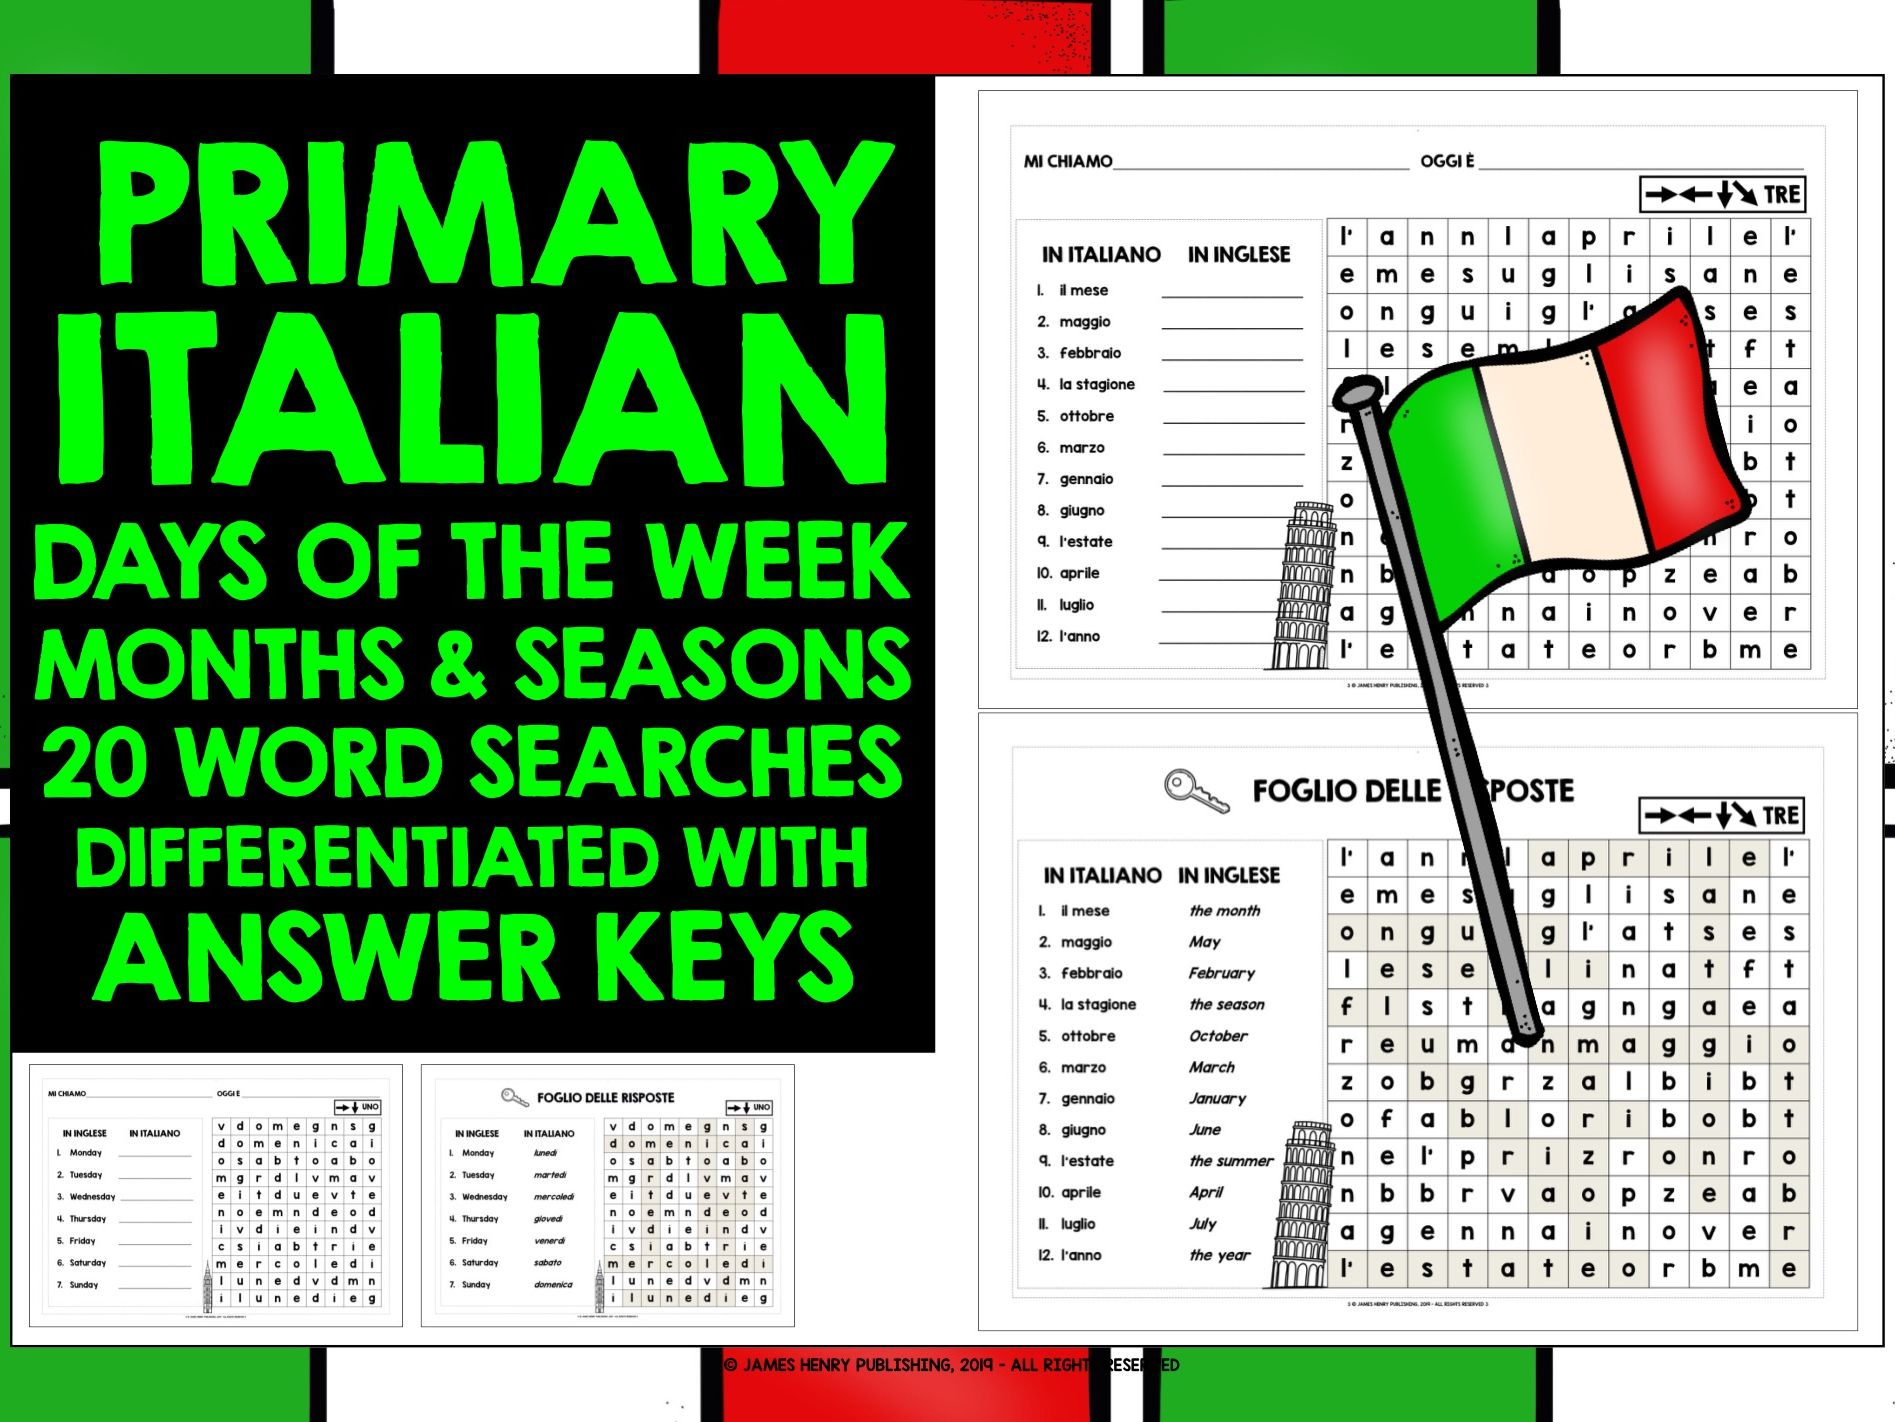 ITALIAN DAYS MONTHS SEASONS WORD SEARCHES